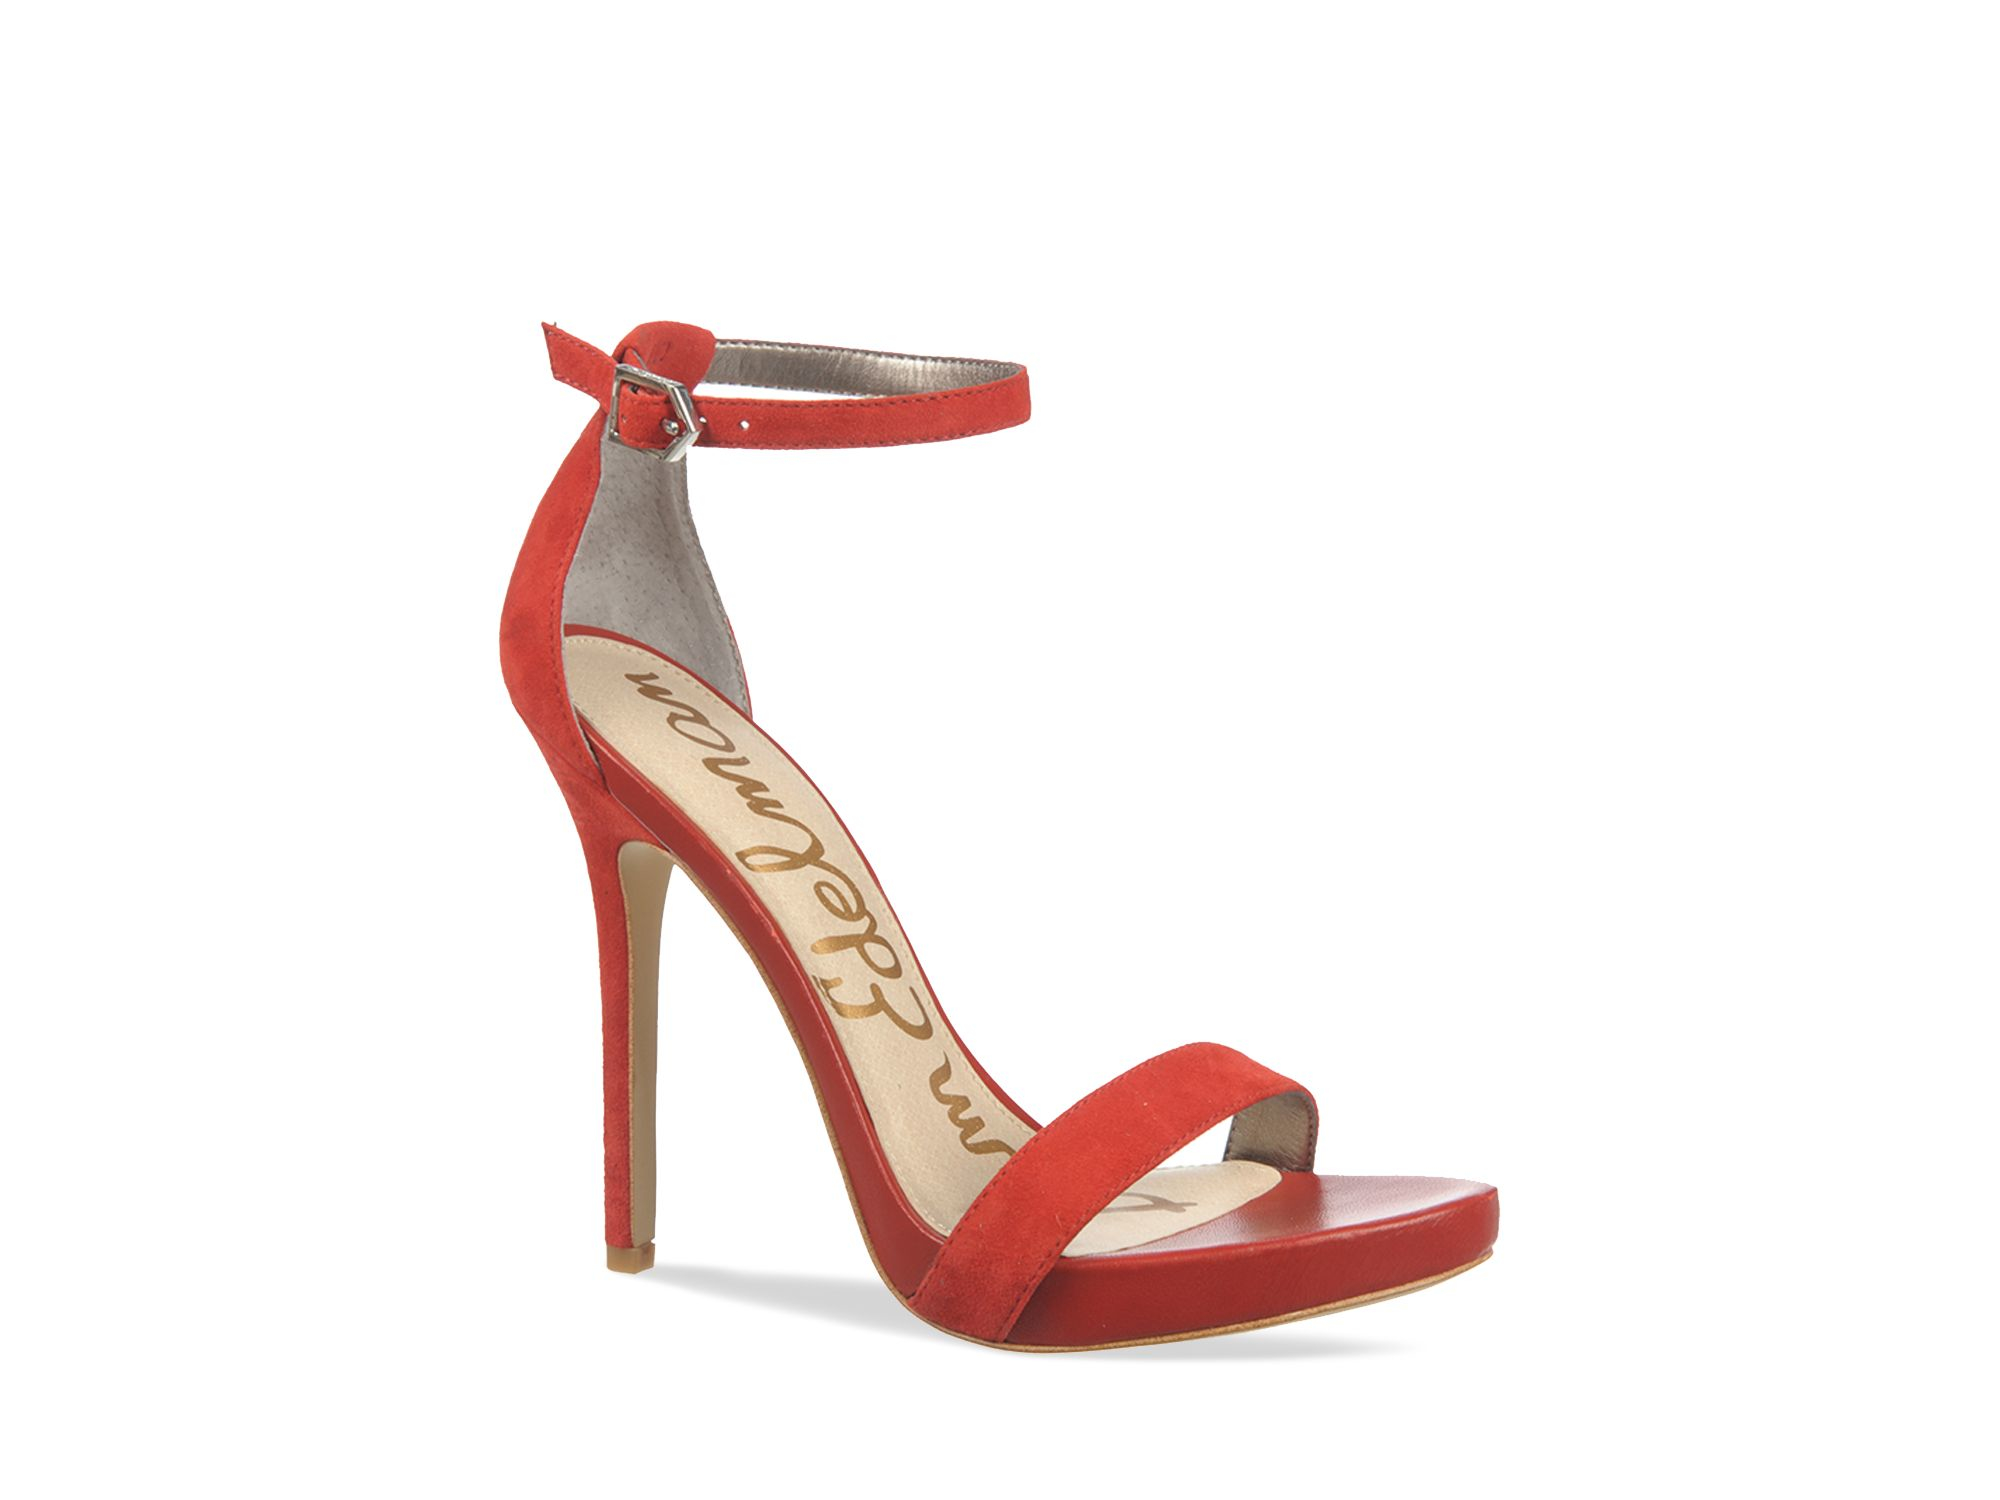 5c82e07a5028d3 Lyst - Sam Edelman Ankle Strap Sandals - Eleanor High Heel in Red